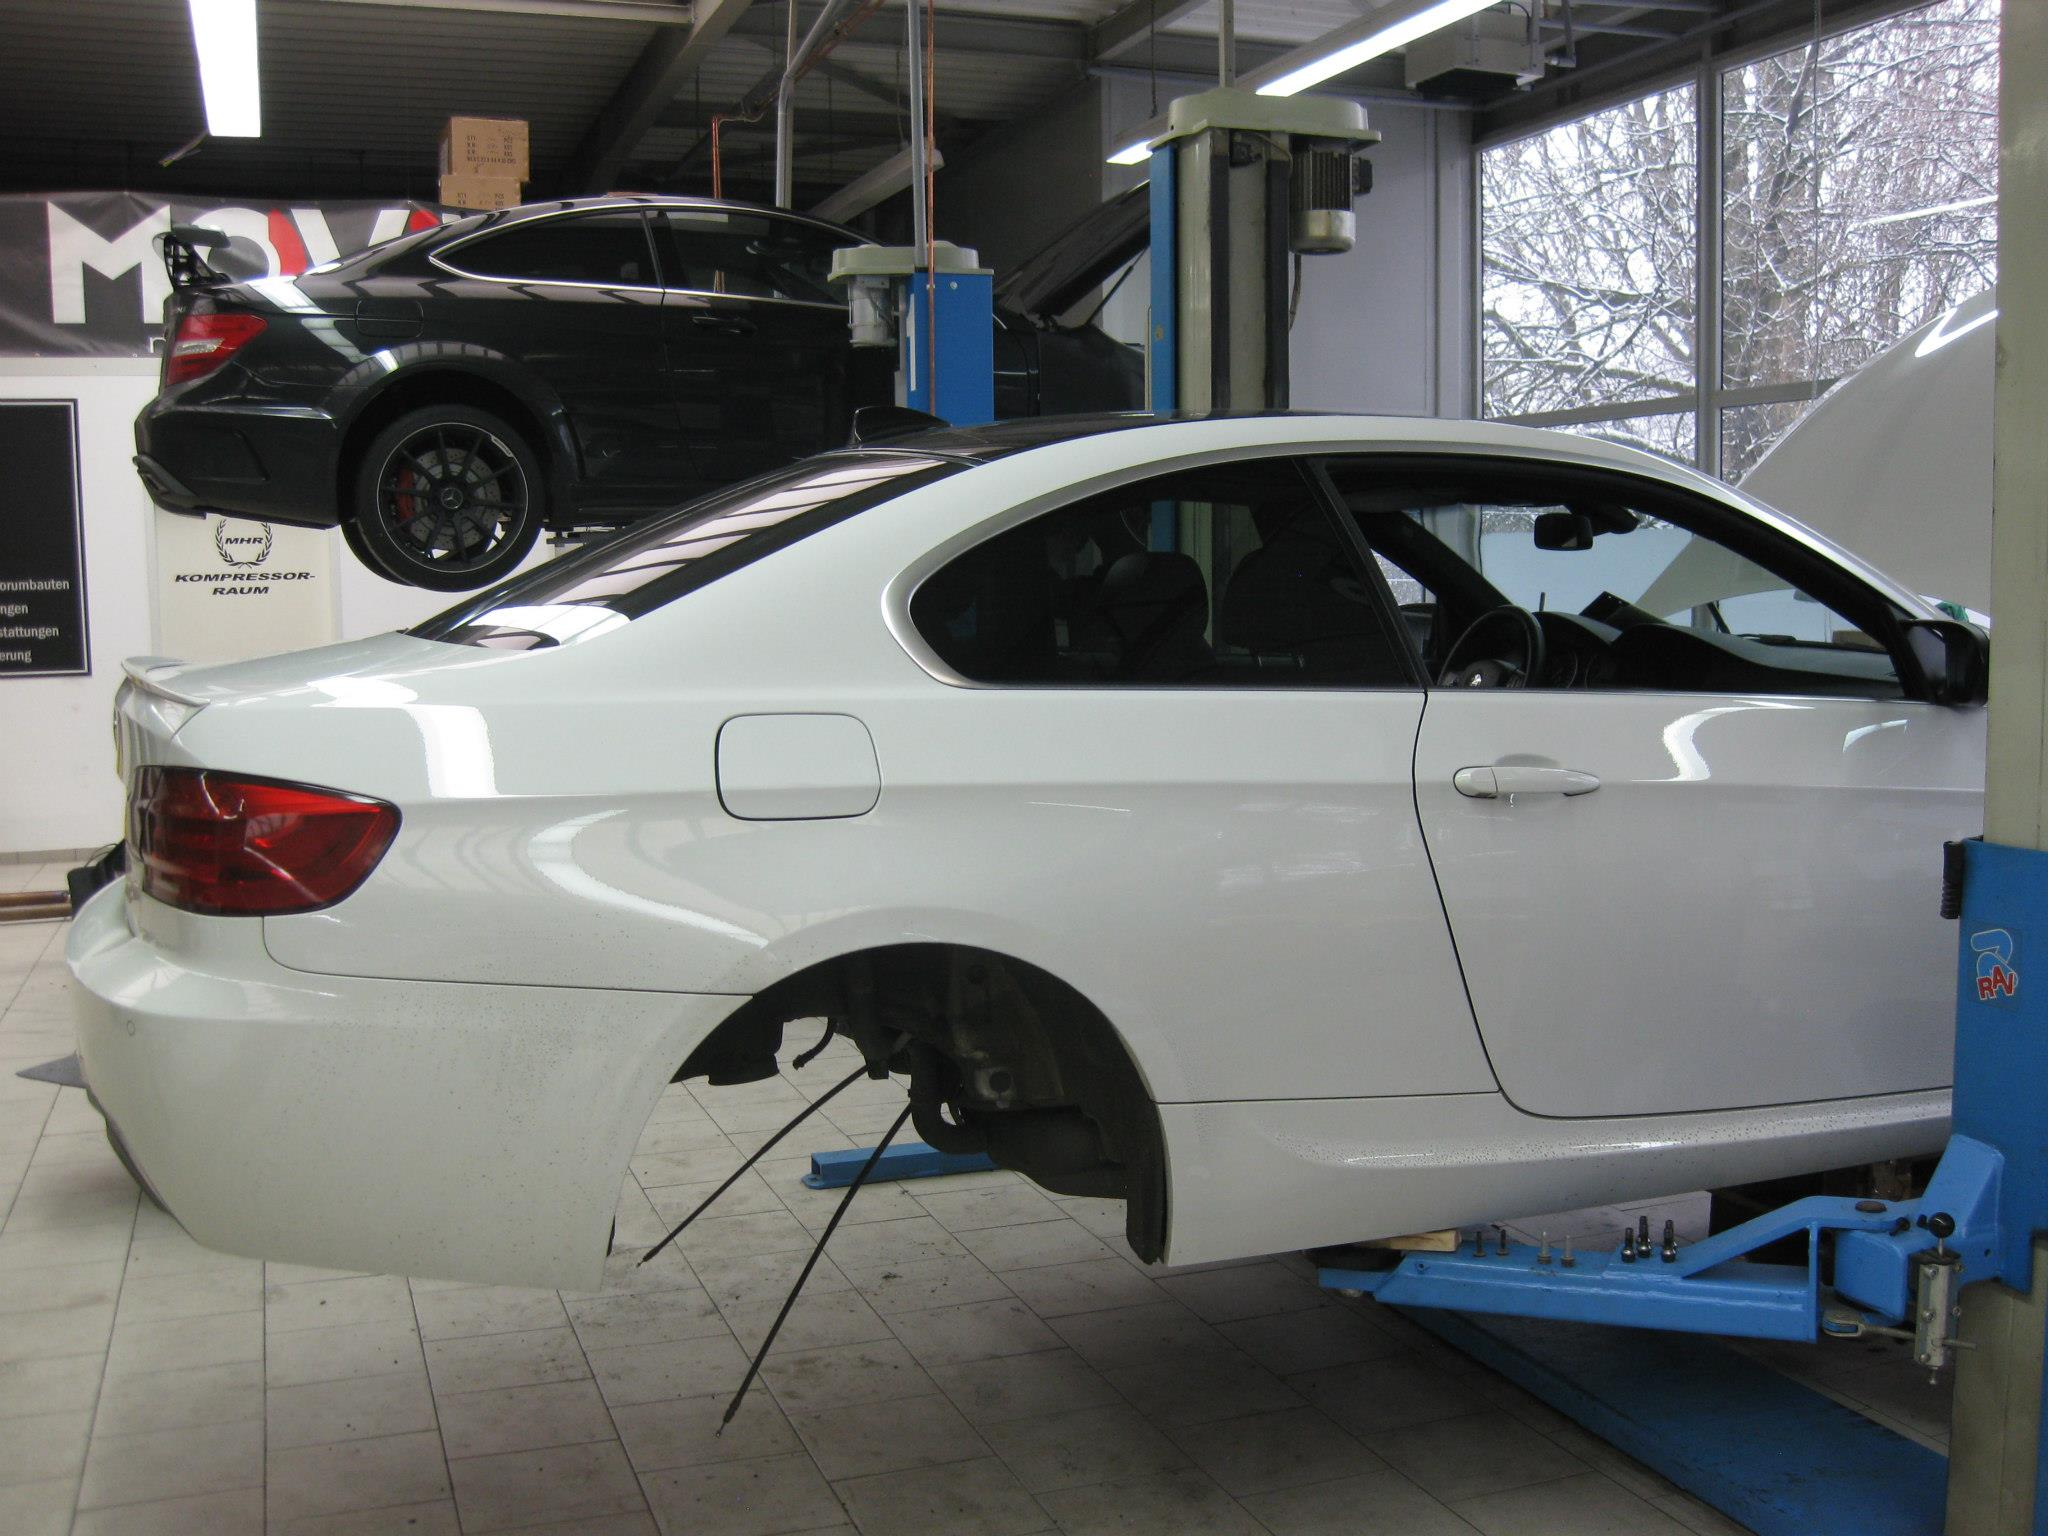 Bmw 335i For Sale >> Manhart Racing BMW E92 335i - Engine Conversion